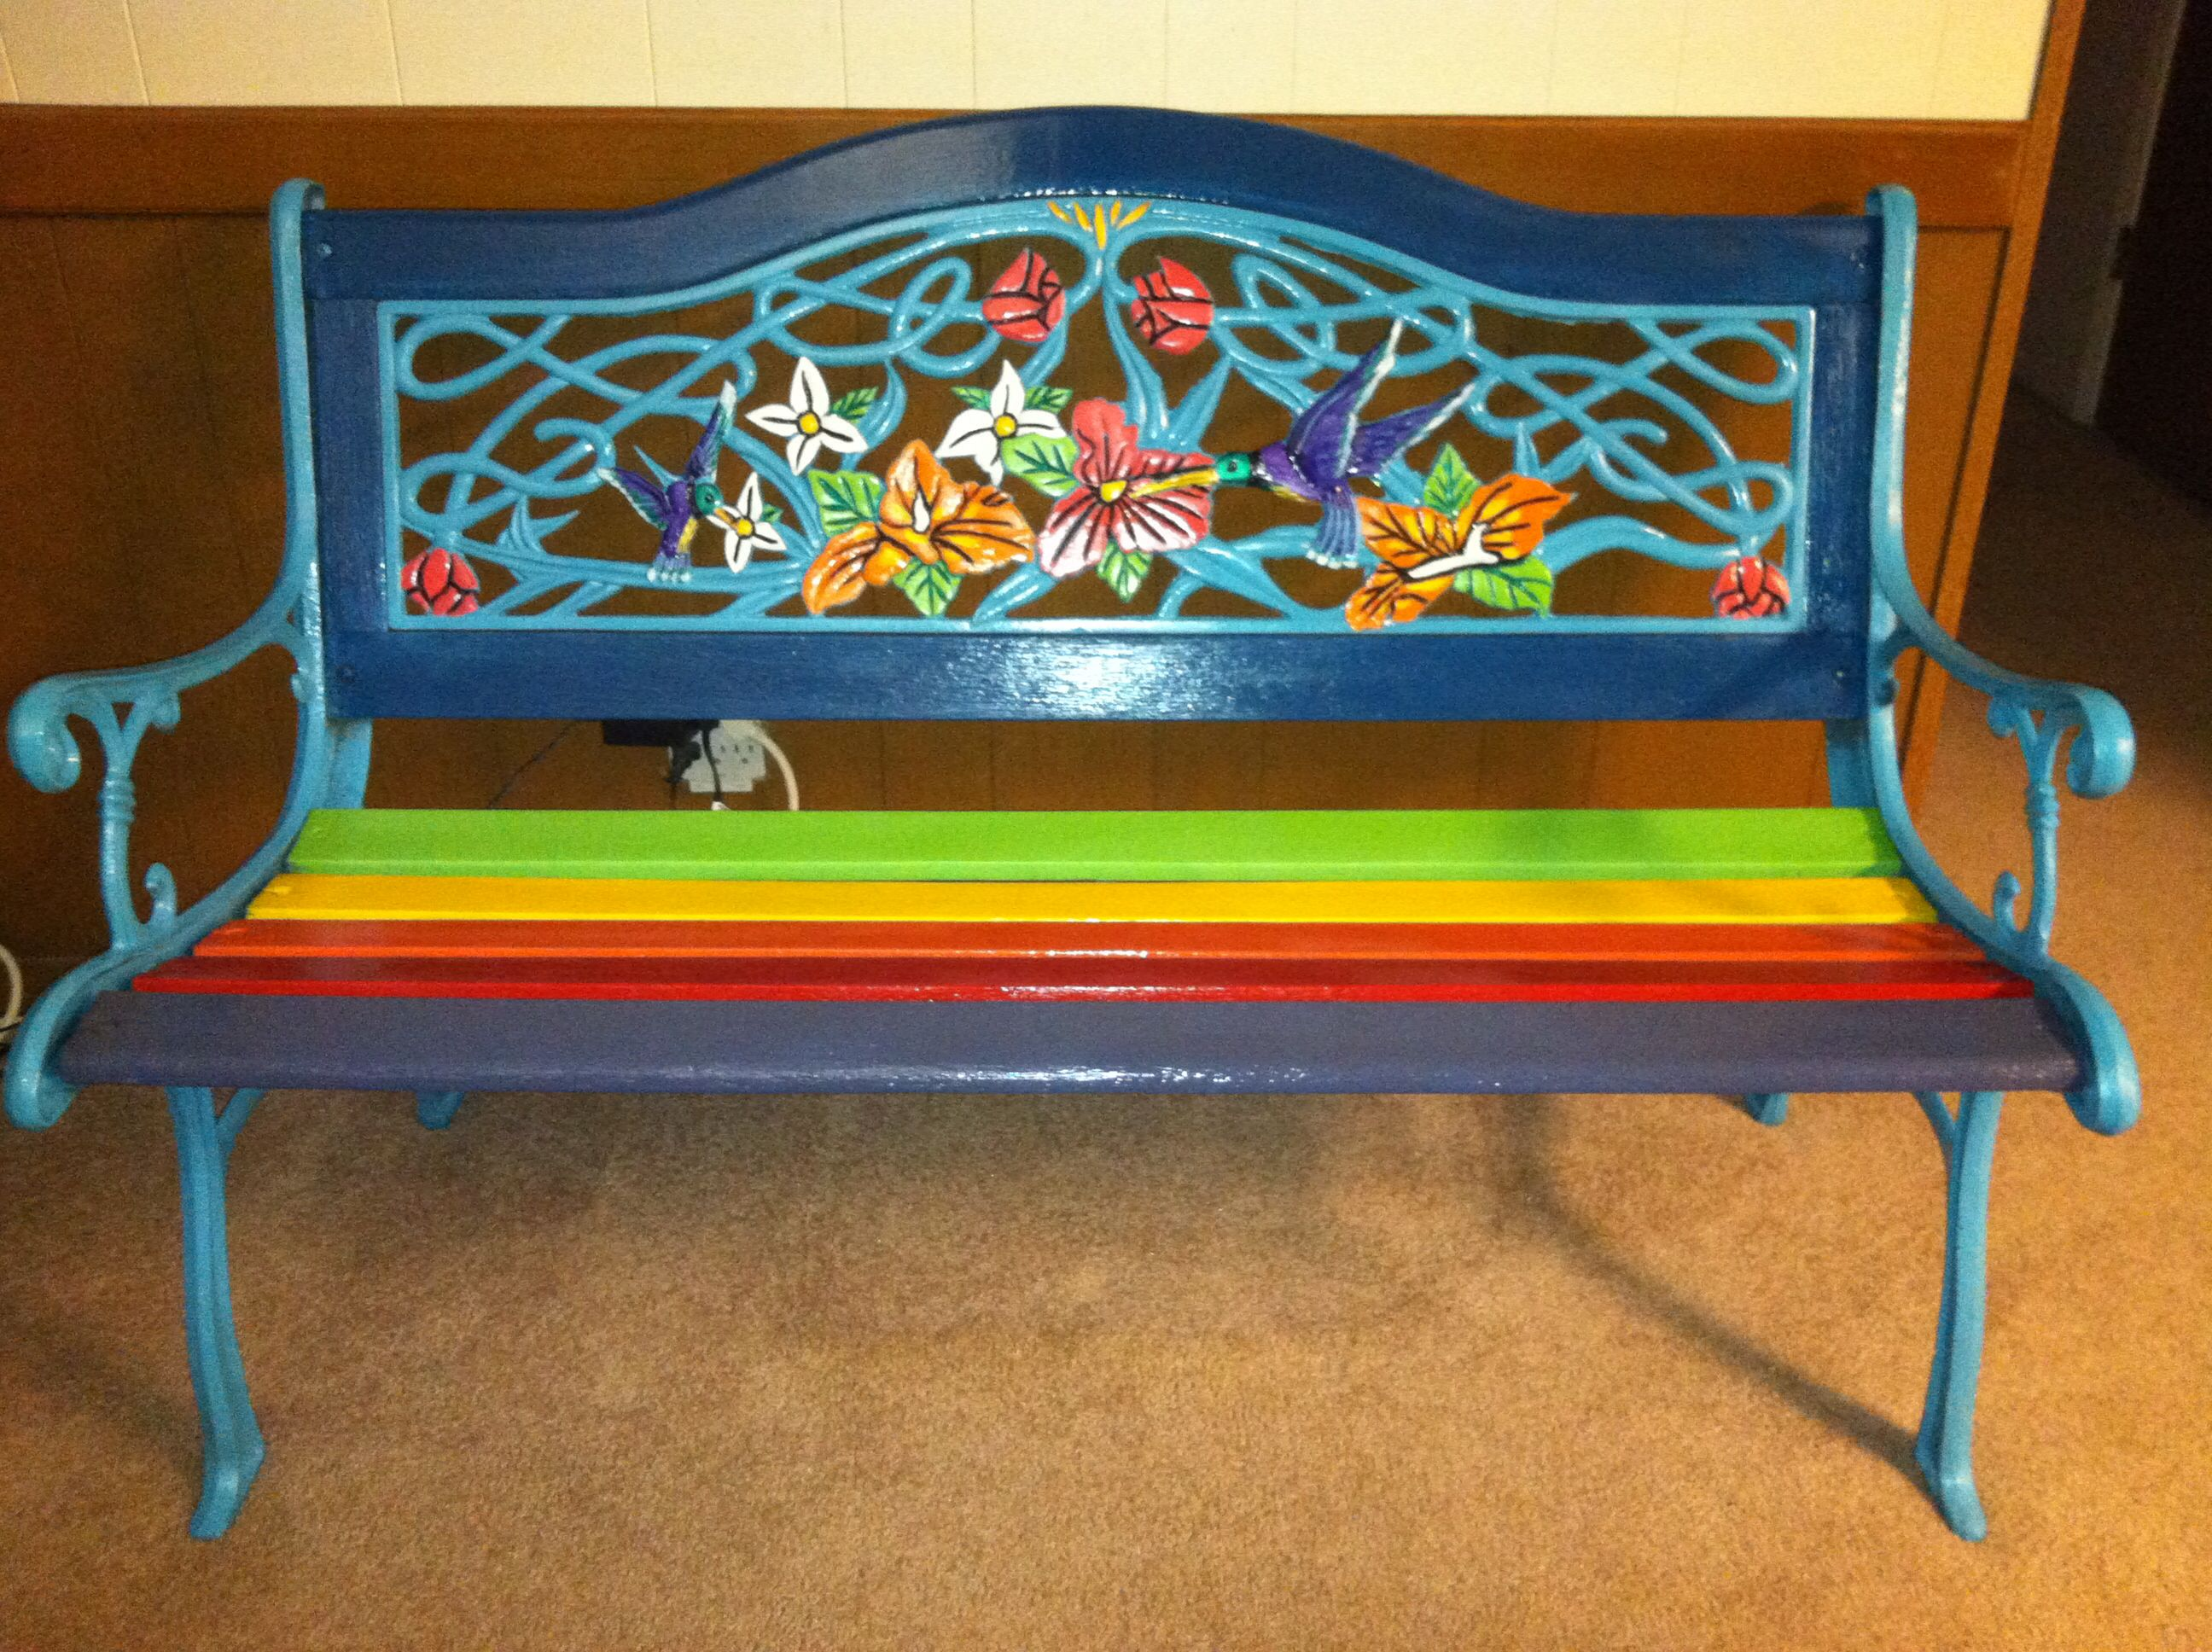 Hand Painted Rainbow Cast Iron Bench I Refurbished For My Friend